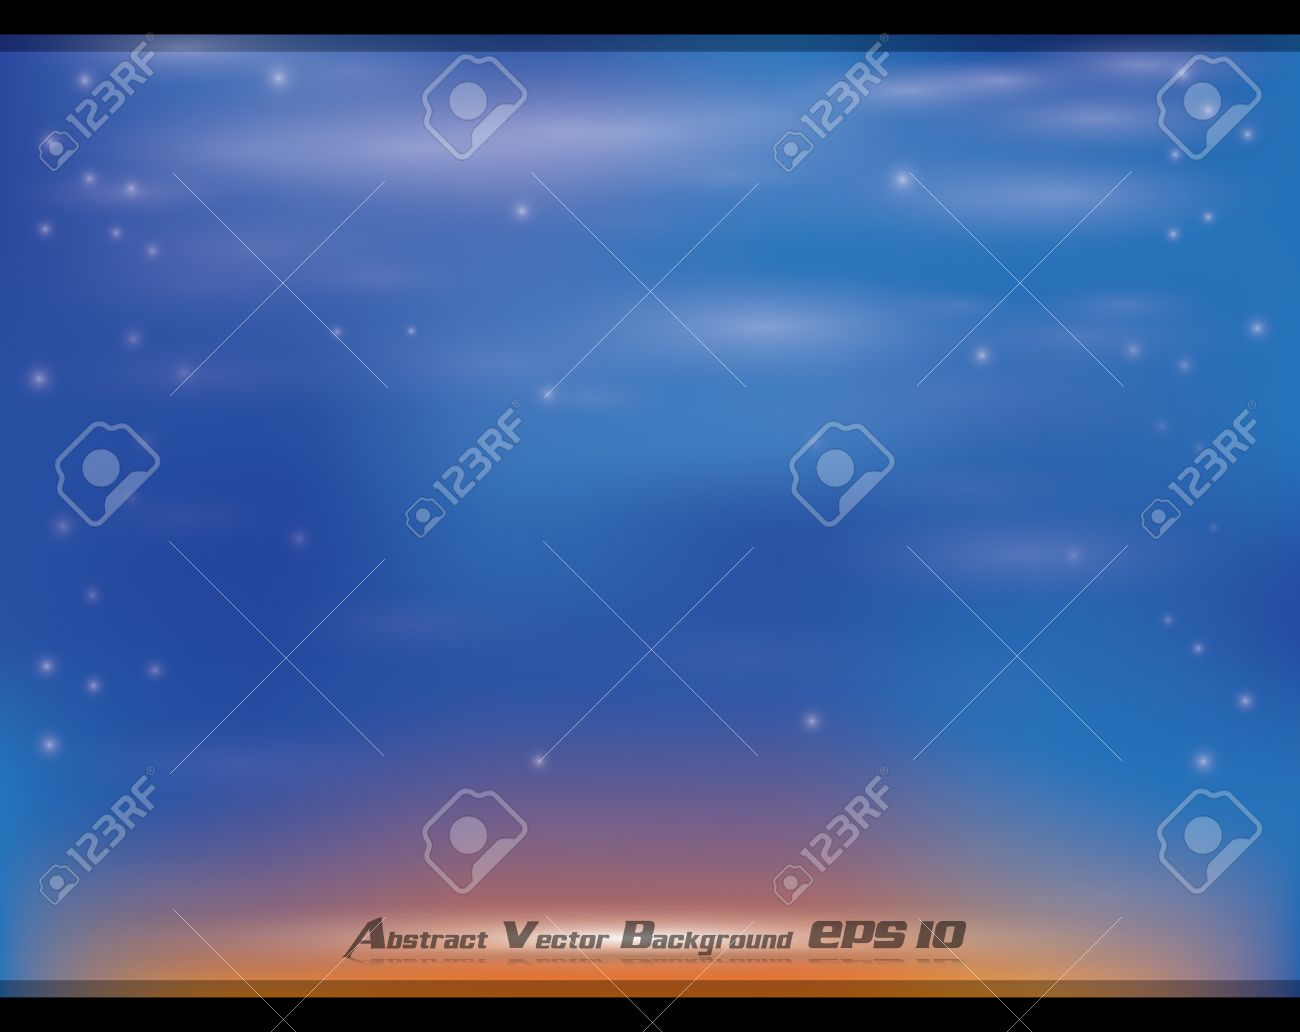 Abstract Blue Orange Soft Background With Glow Effects Royalty.